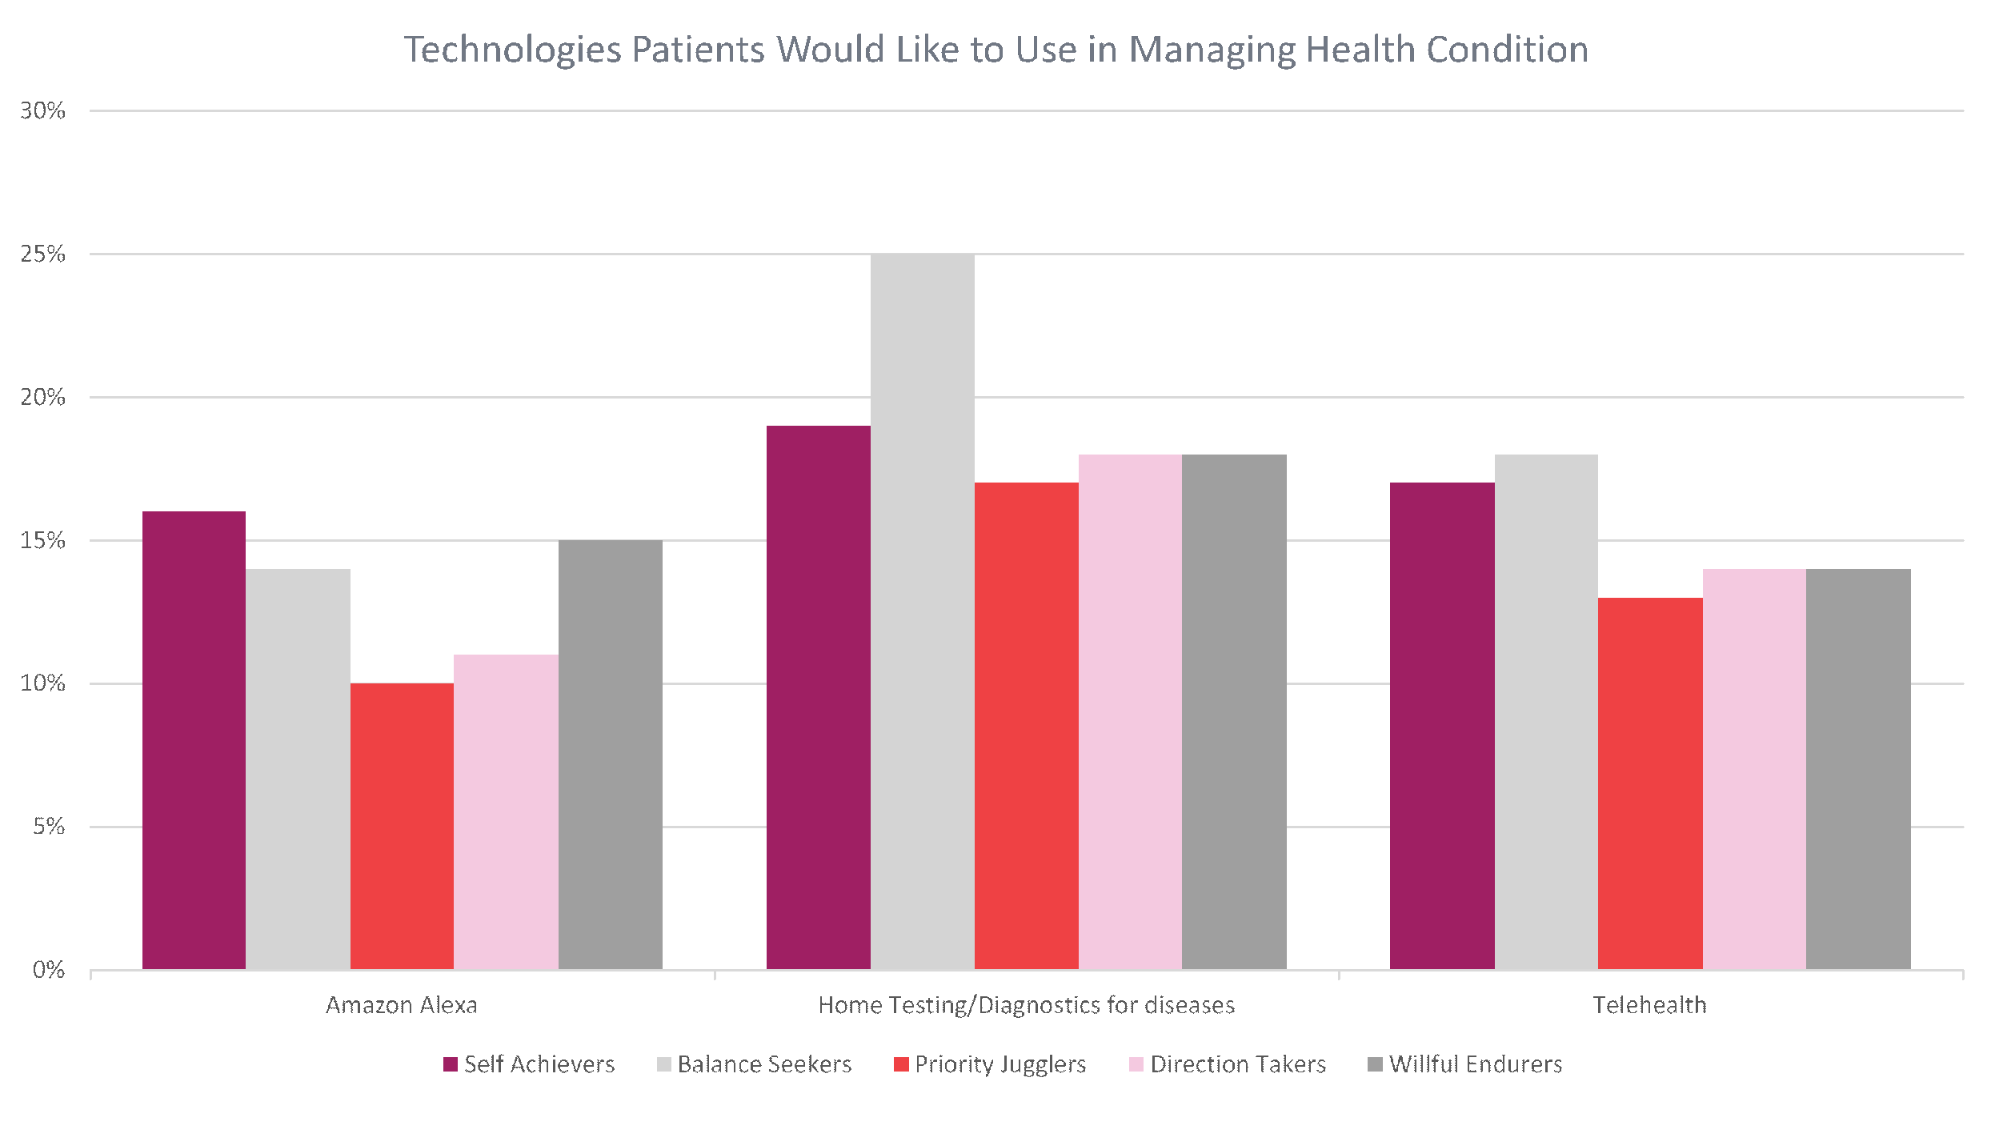 Technologies Patients Would Like to Use in Managing Health Condition